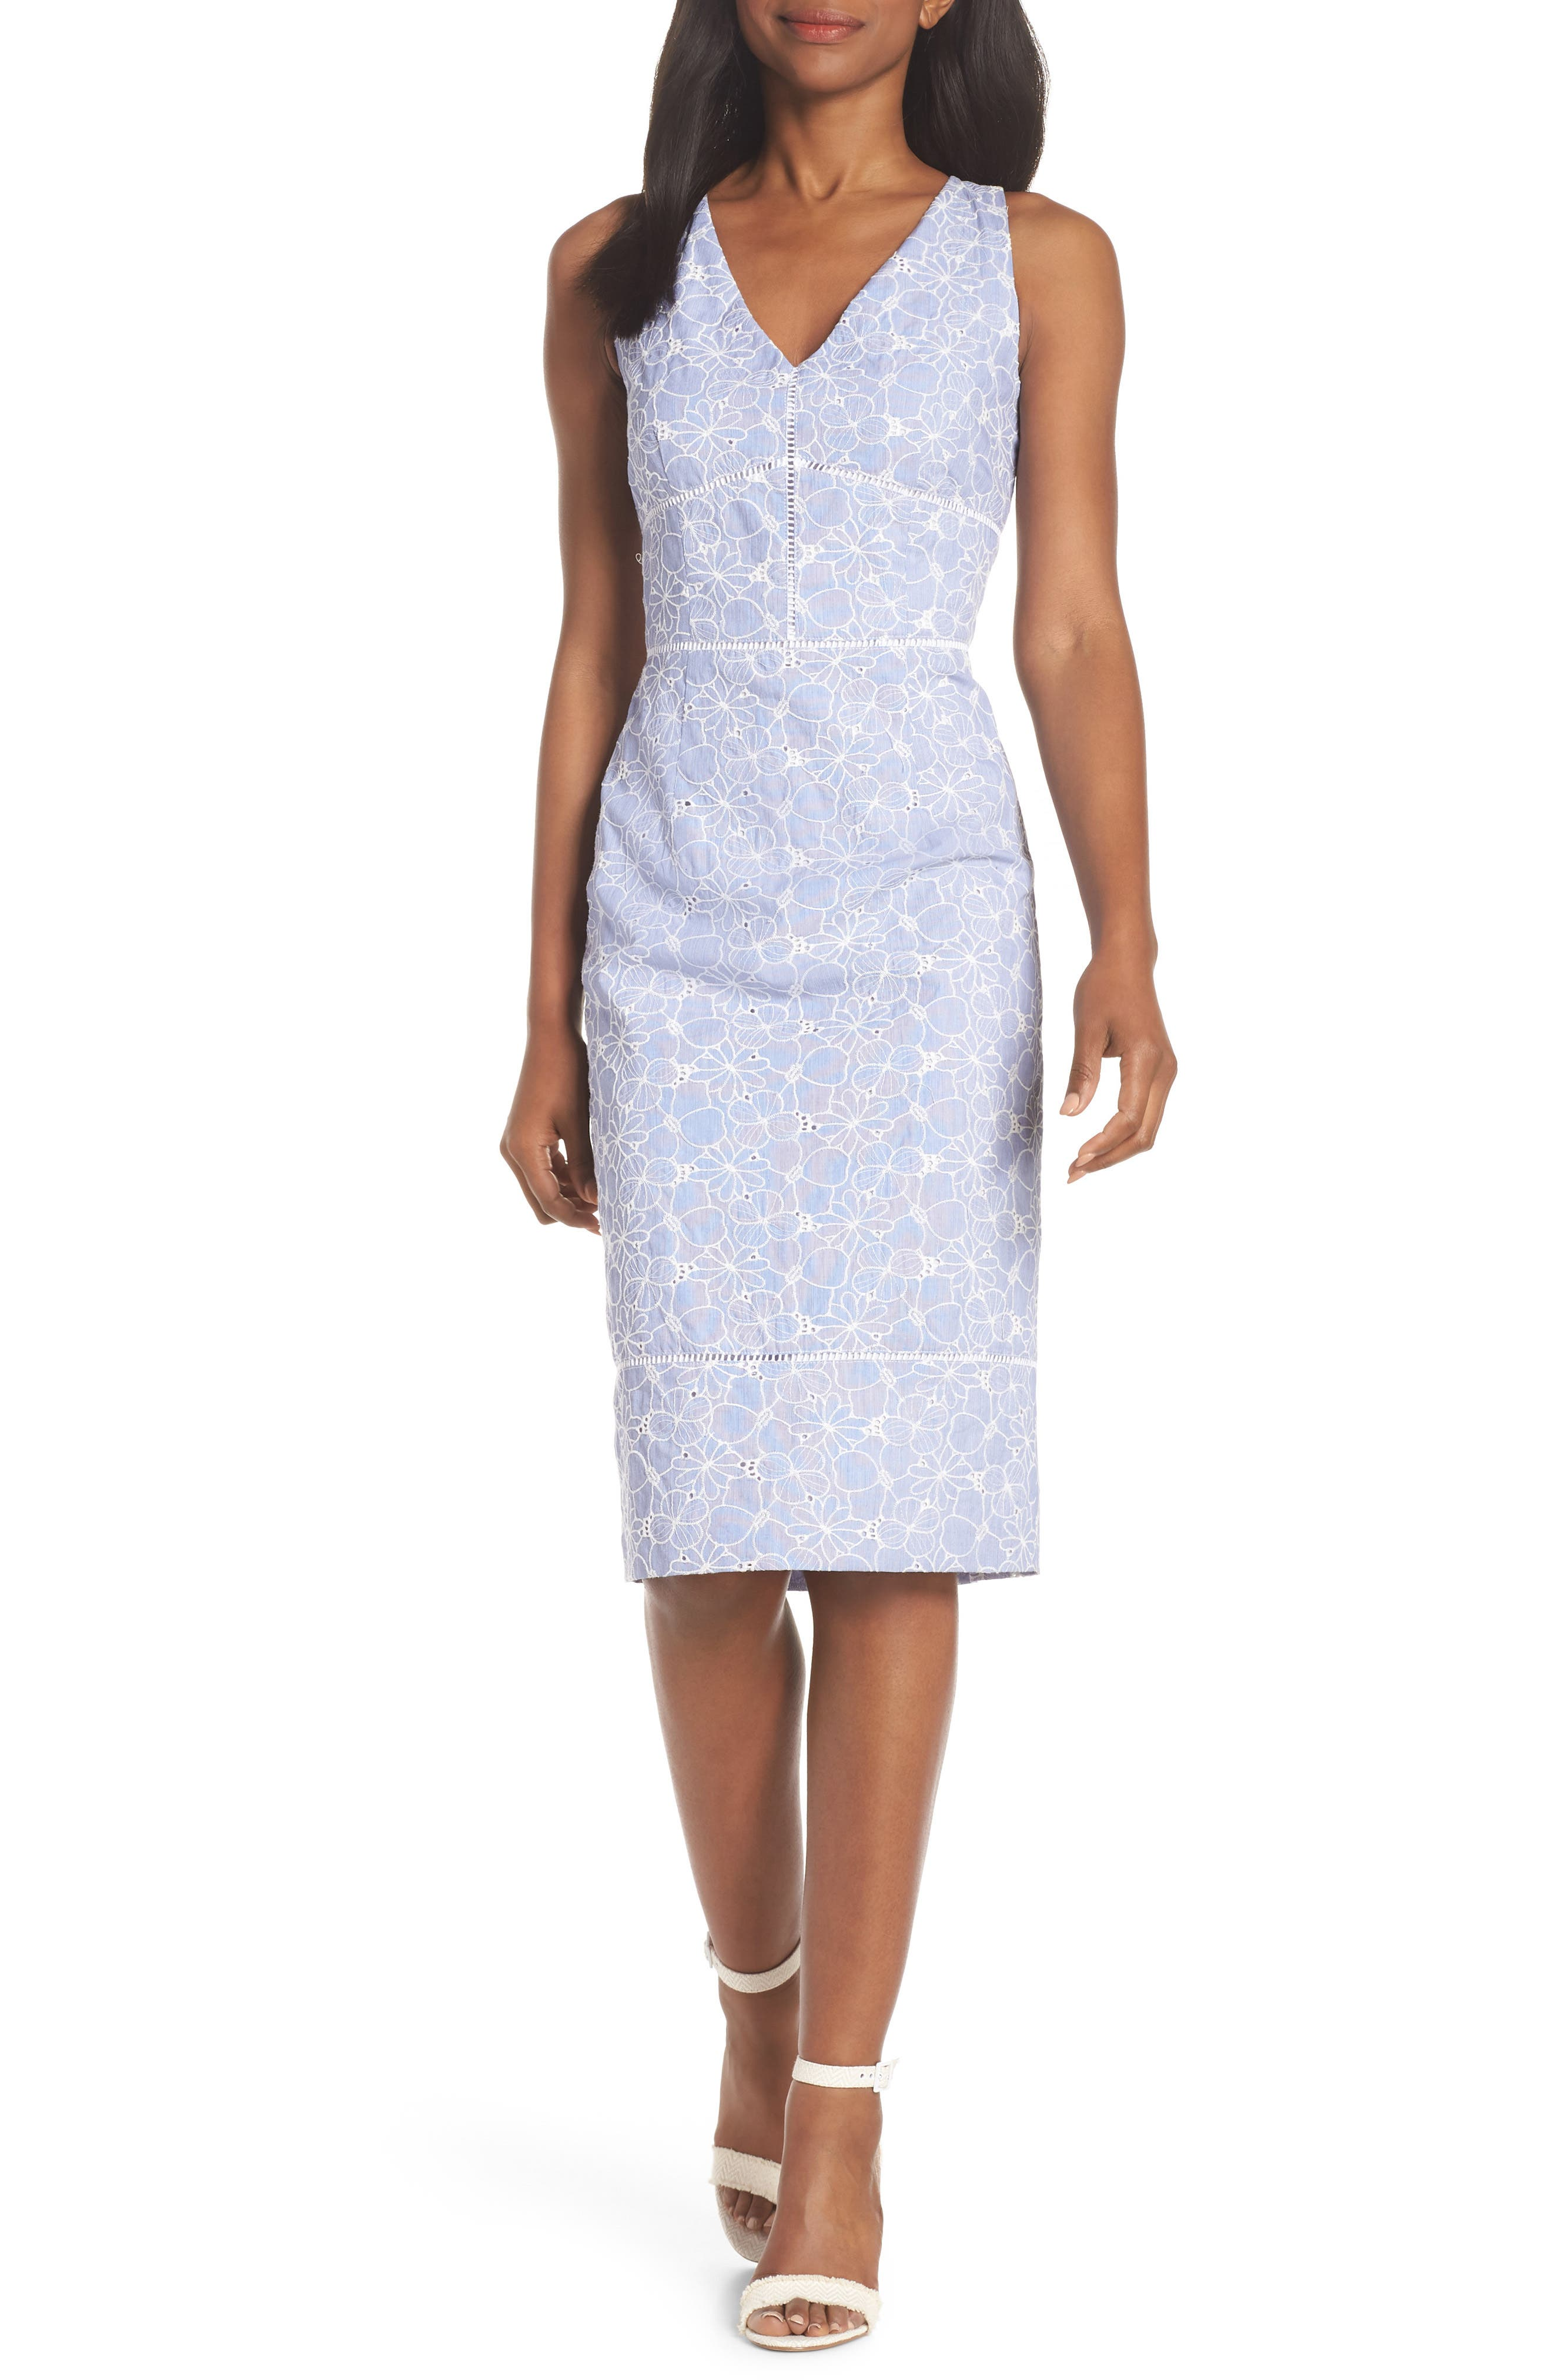 Alternate Image 1 Selected - Maggy London Sleeveless Embroidered Sheath Dress (Regular & Petite)